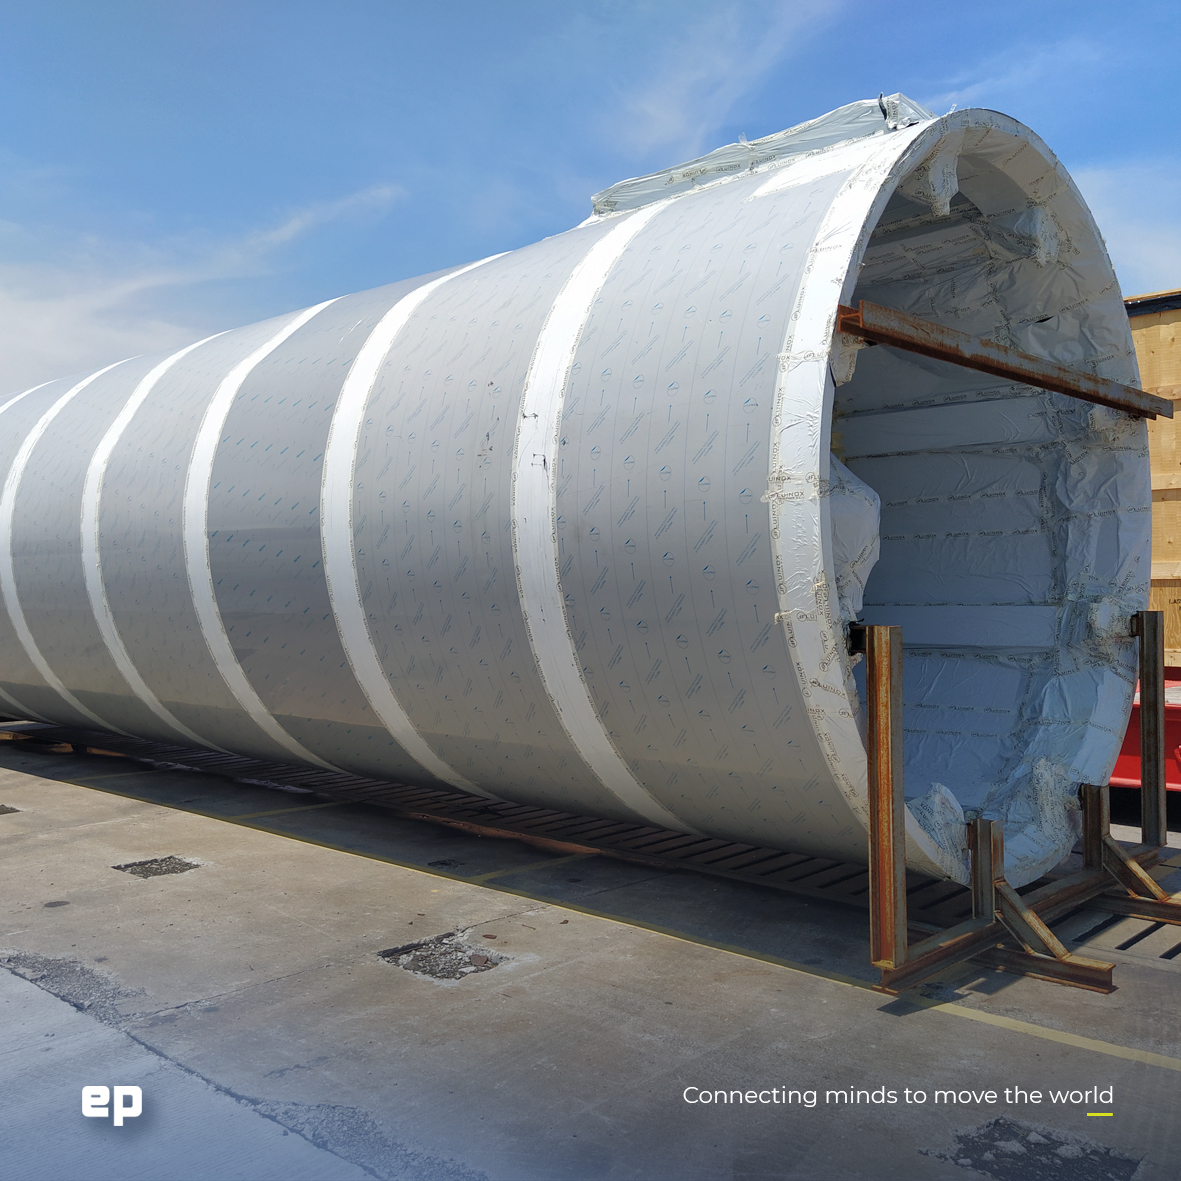 The first silo arriving in July